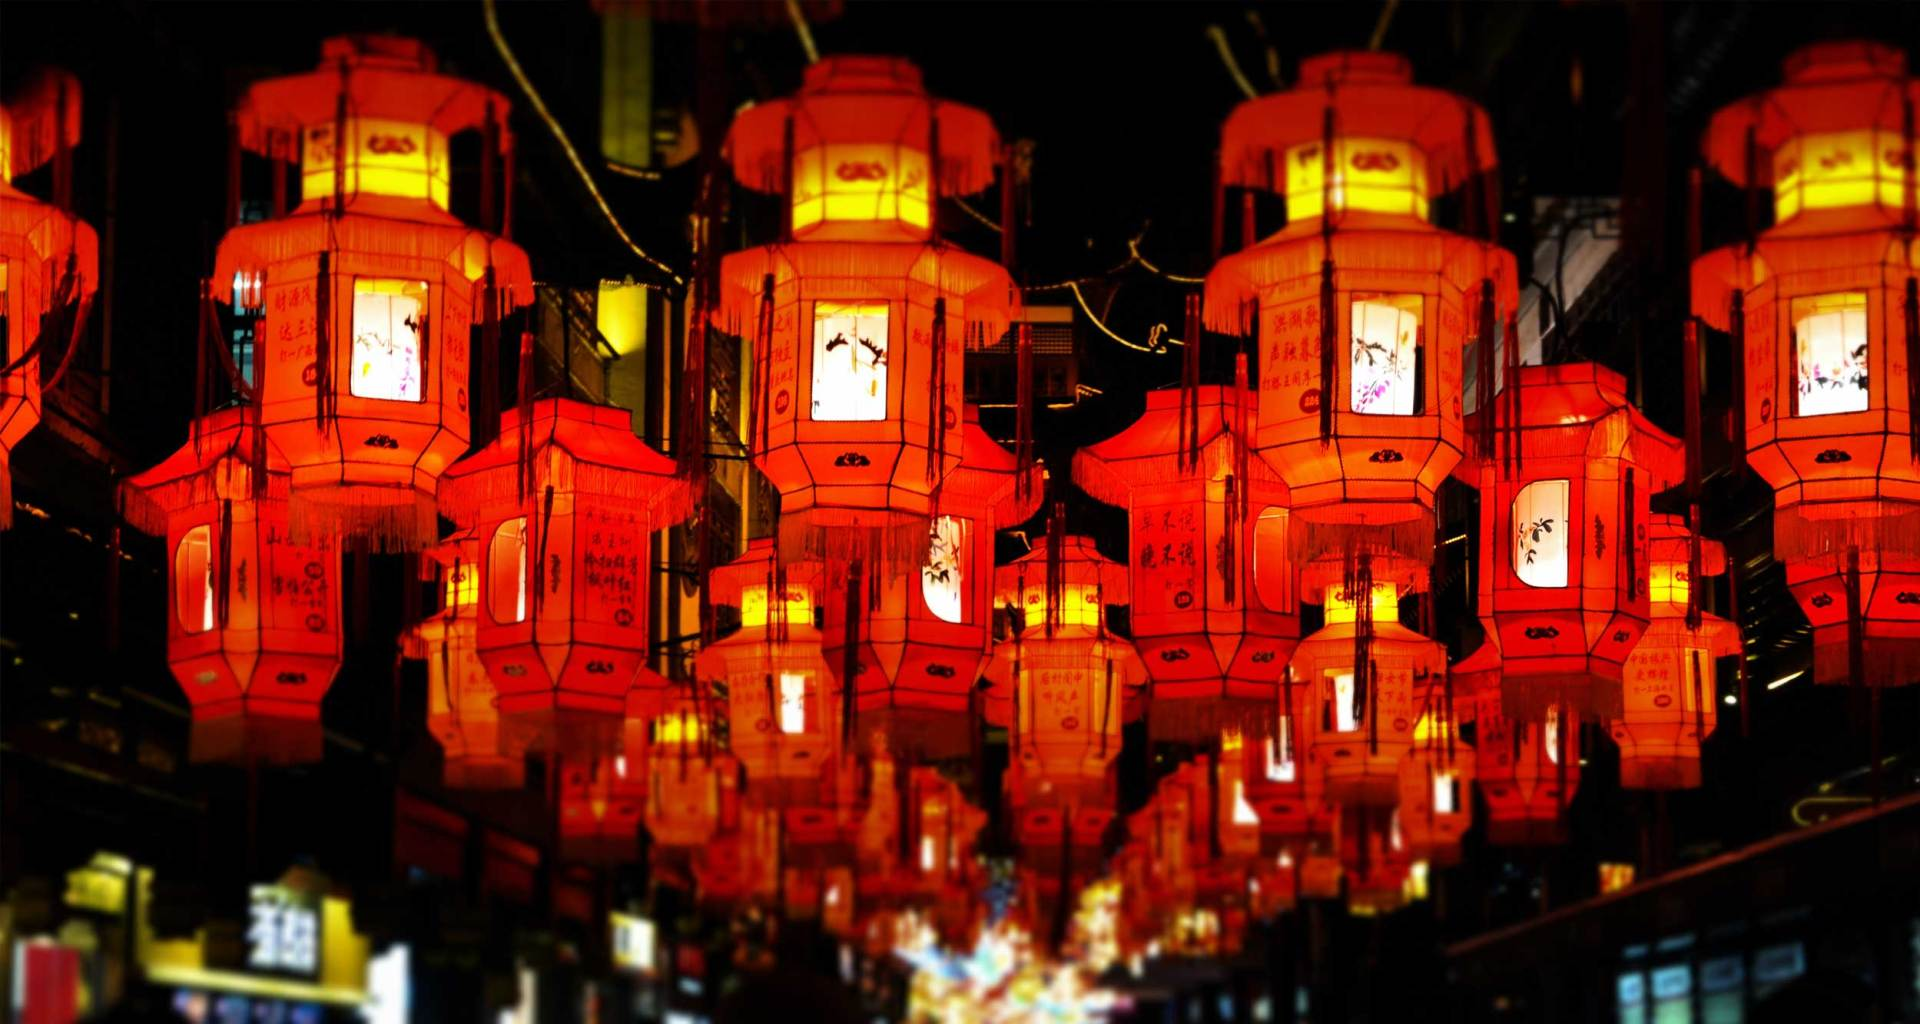 Lanterns hanging over a street in China.